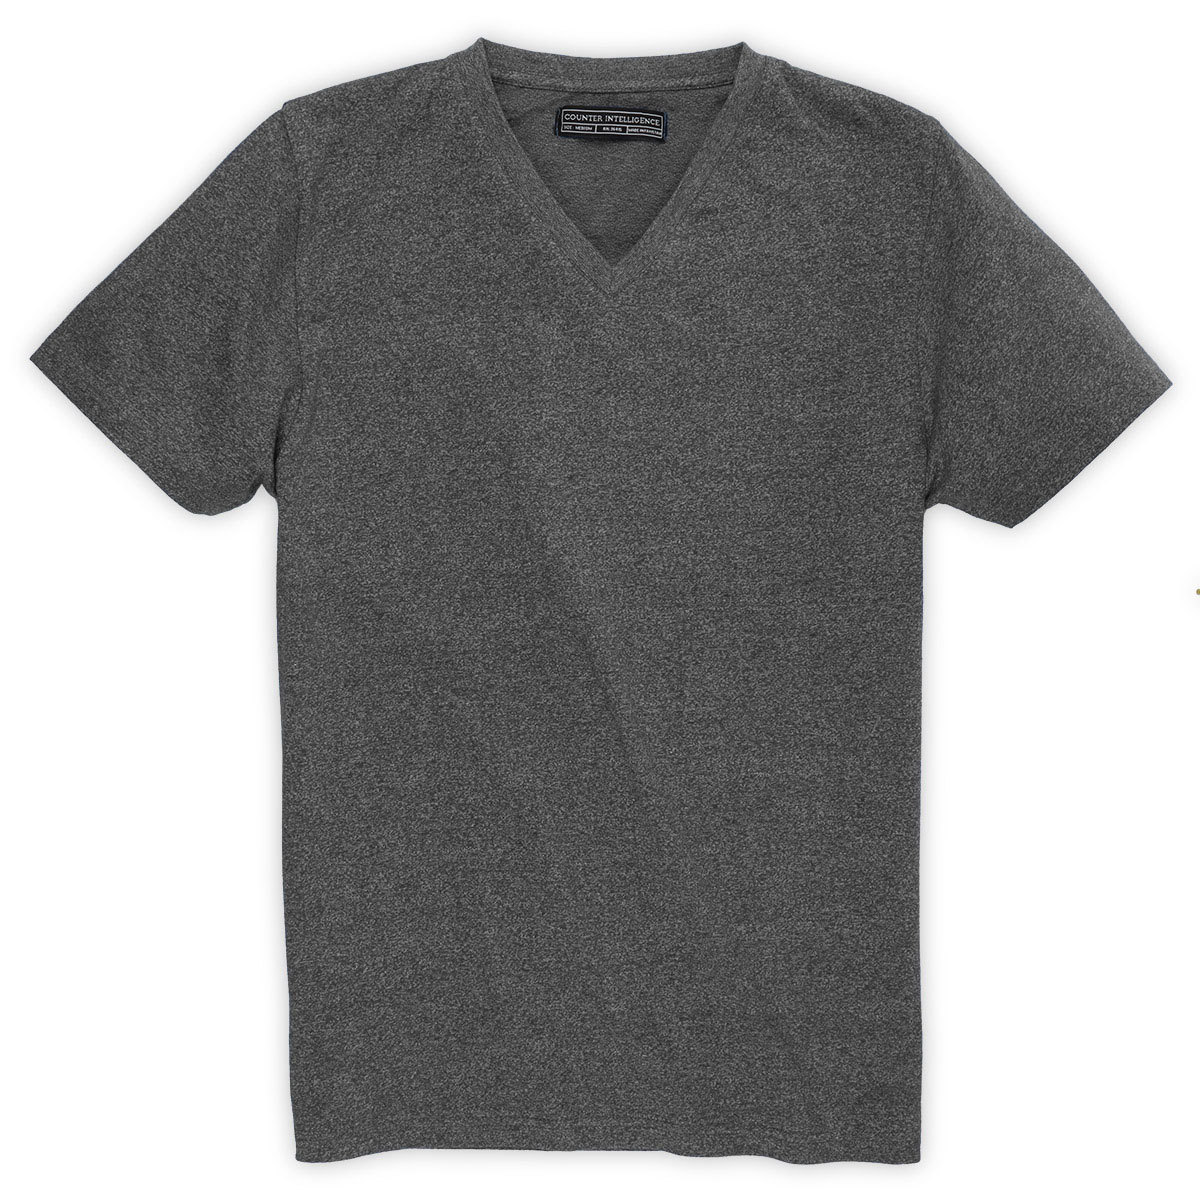 Counter Intelligence Guys' Marled V-Neck Tee - Black, L